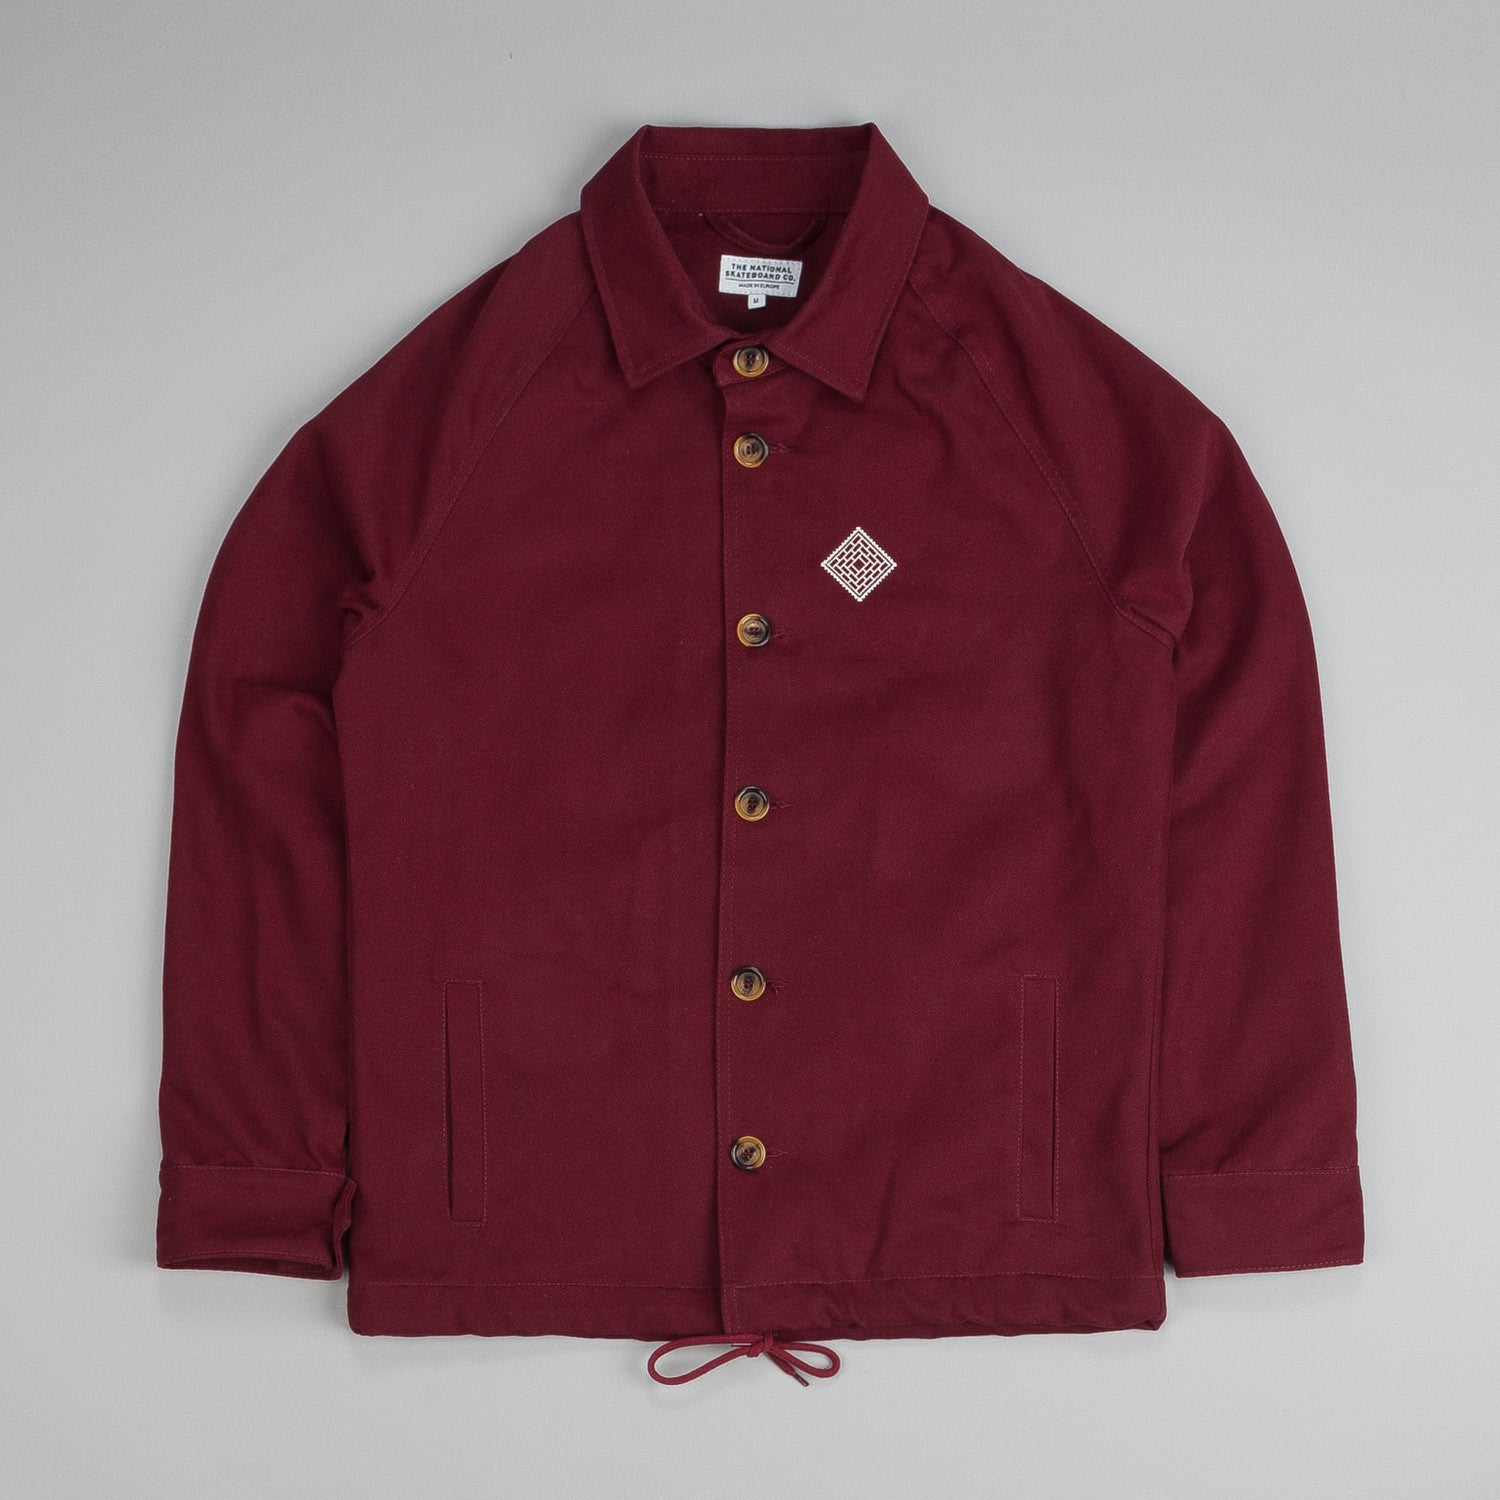 The National Skateboard Co X Post Coach Jacket Burgundy